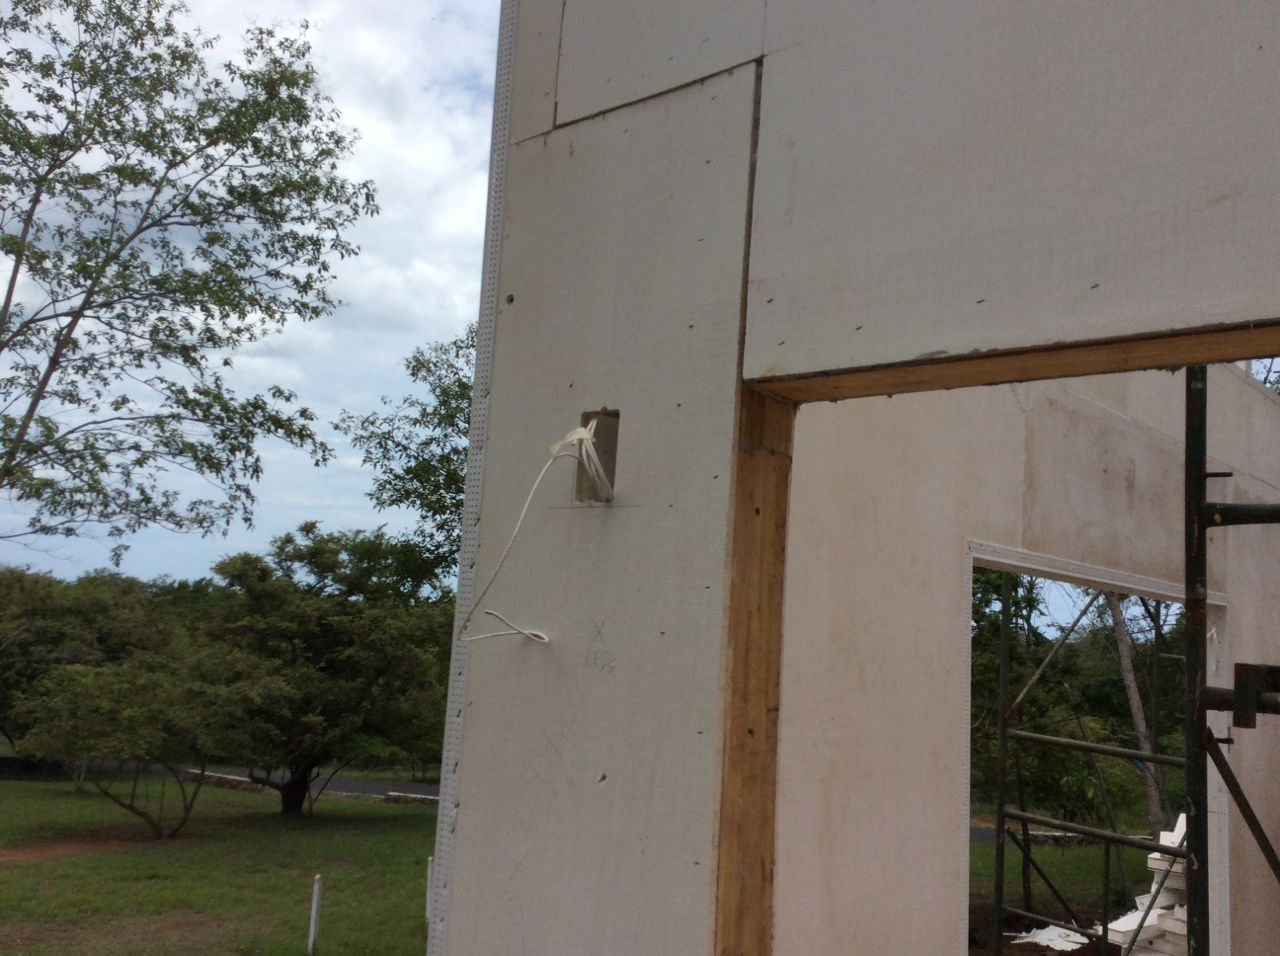 Boxes installed to service security cameras